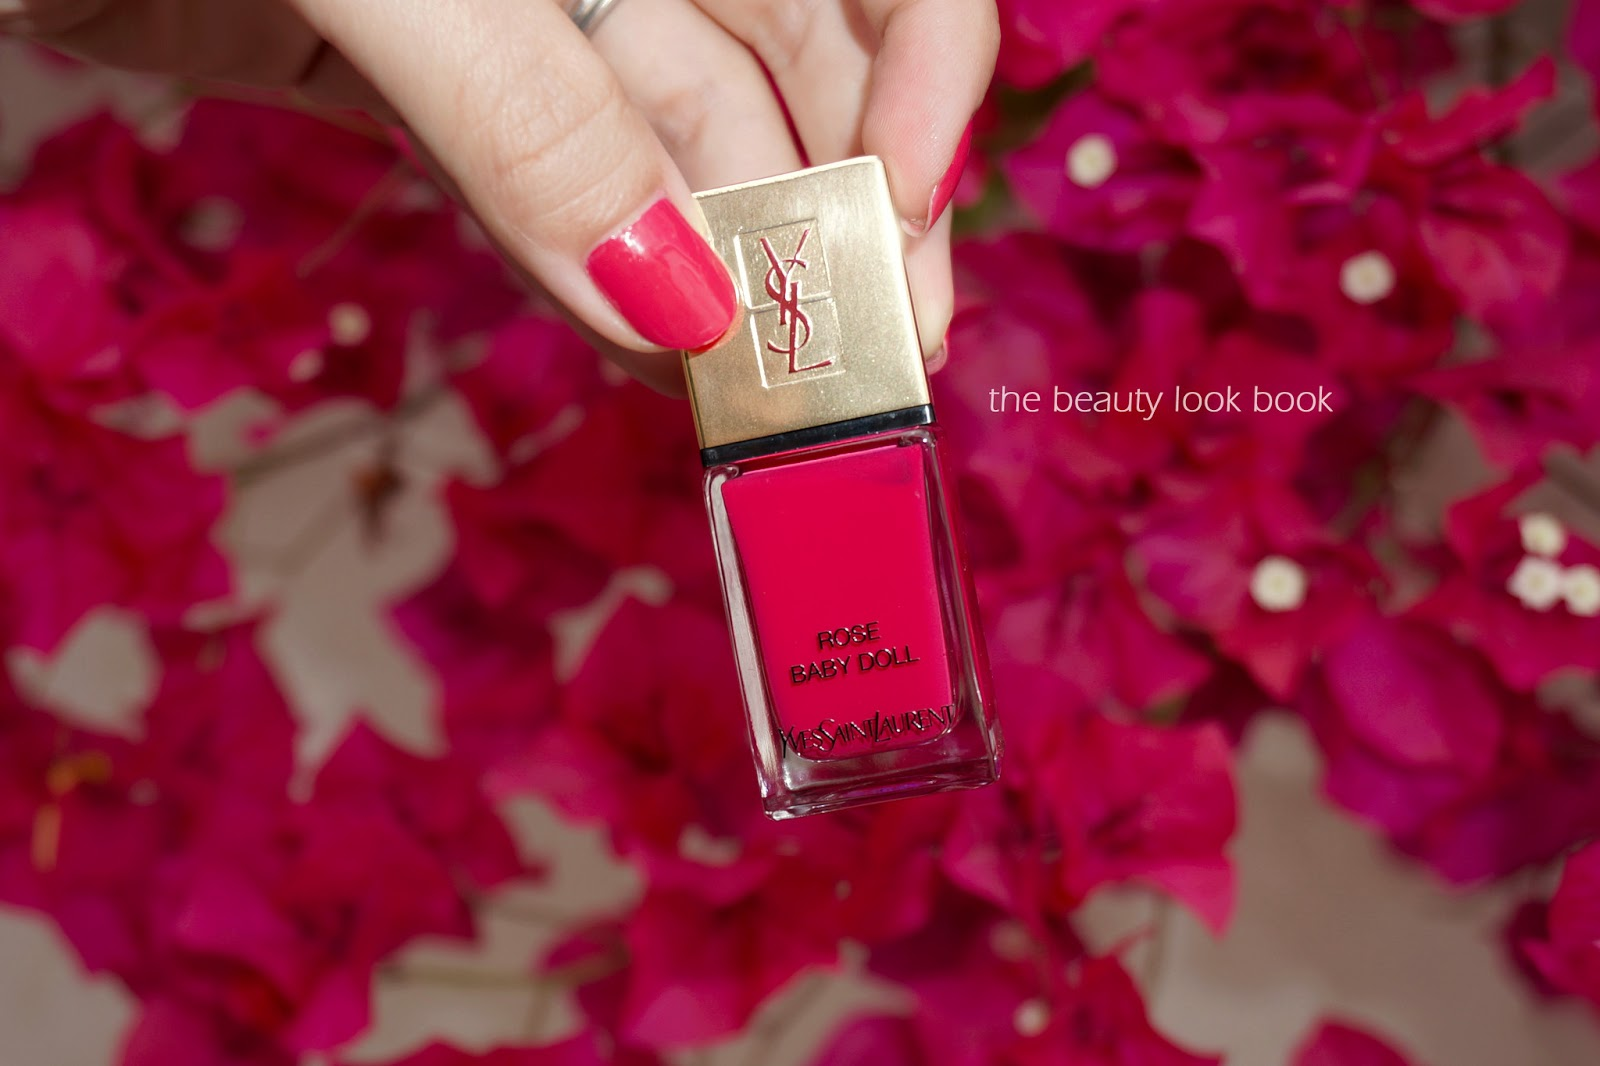 Ysl Rose Baby Doll La Laque Couture The Beauty Look Book